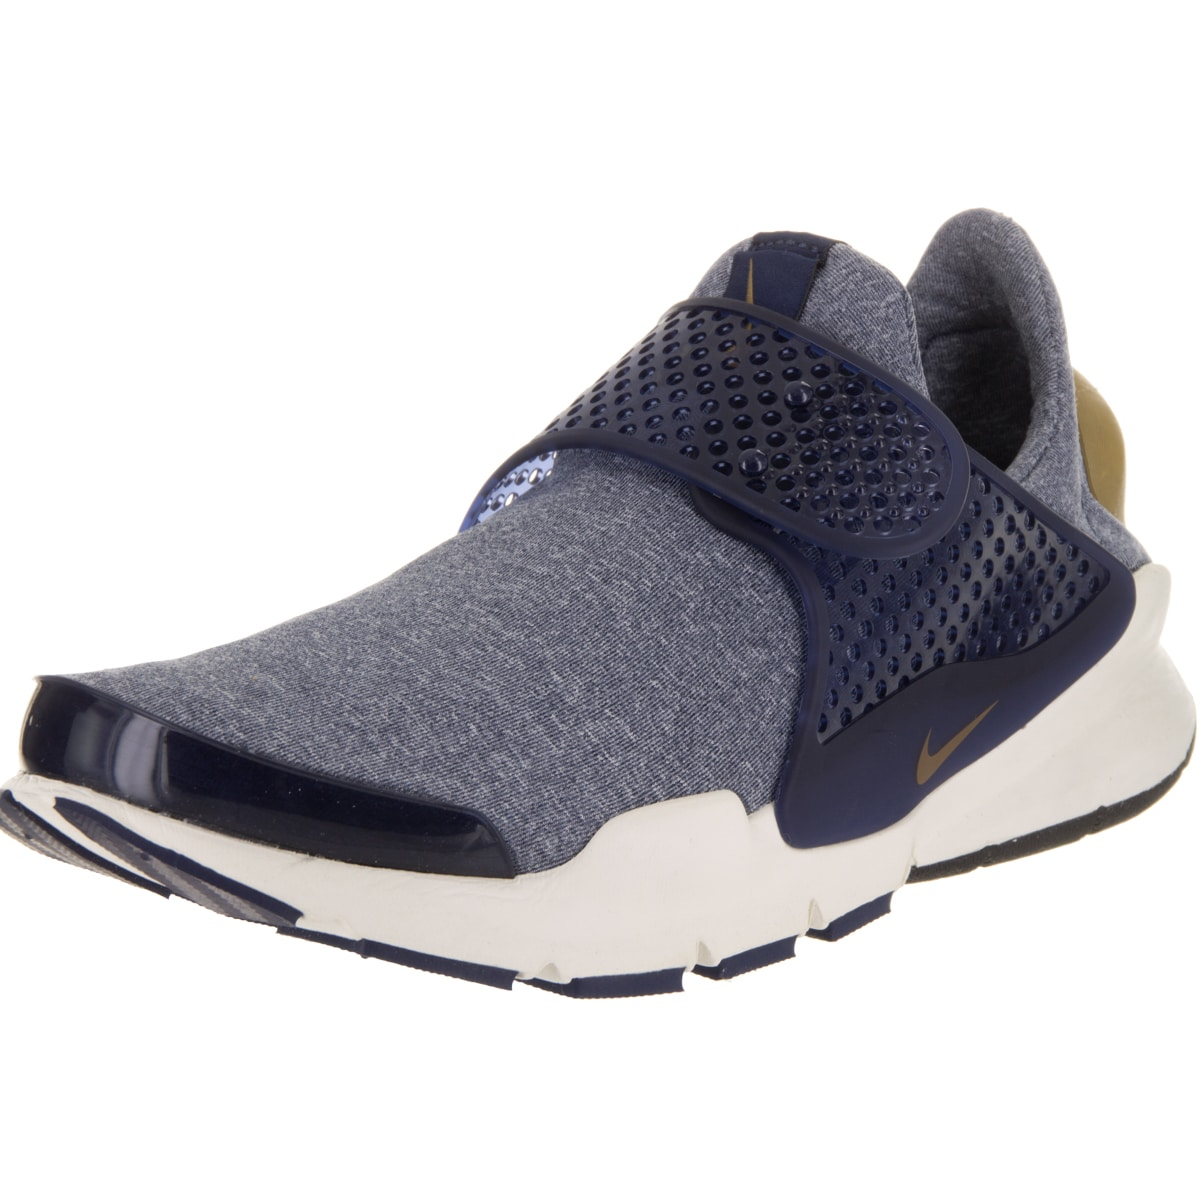 5660d7c49bcb2 Shop Nike Women's Sock Dart SE Midnight Navy and Golden Beige Textile Running  Shoe - Free Shipping Today - Overstock.com - 13679968